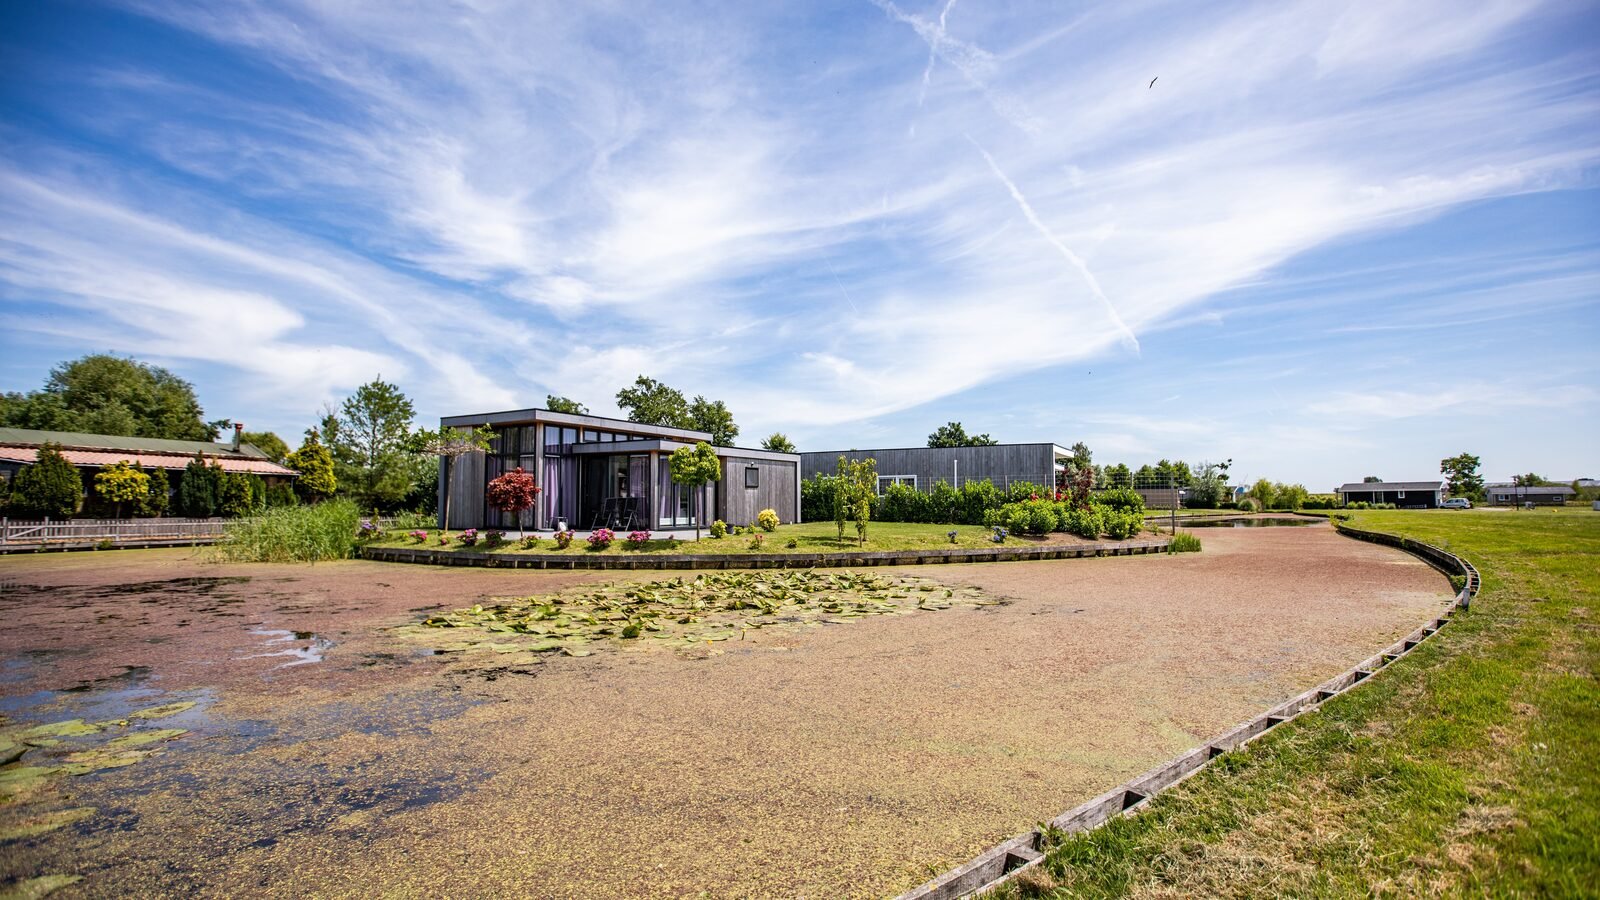 Accessible holiday parks the Netherlands